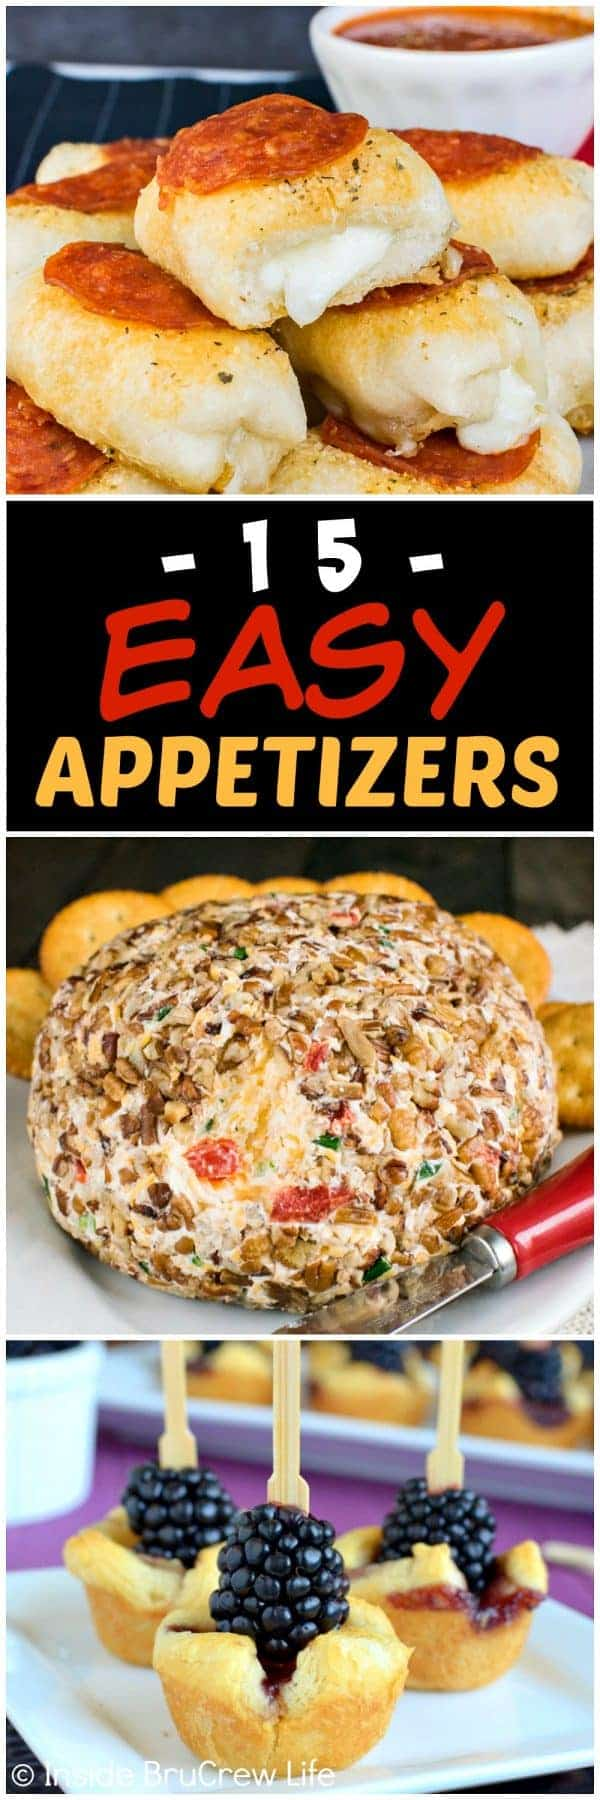 15 Easy Appetizer Recipes - easy appetizers that are family approved. Dips and appetizers are a fun snack at any game day or holiday party!